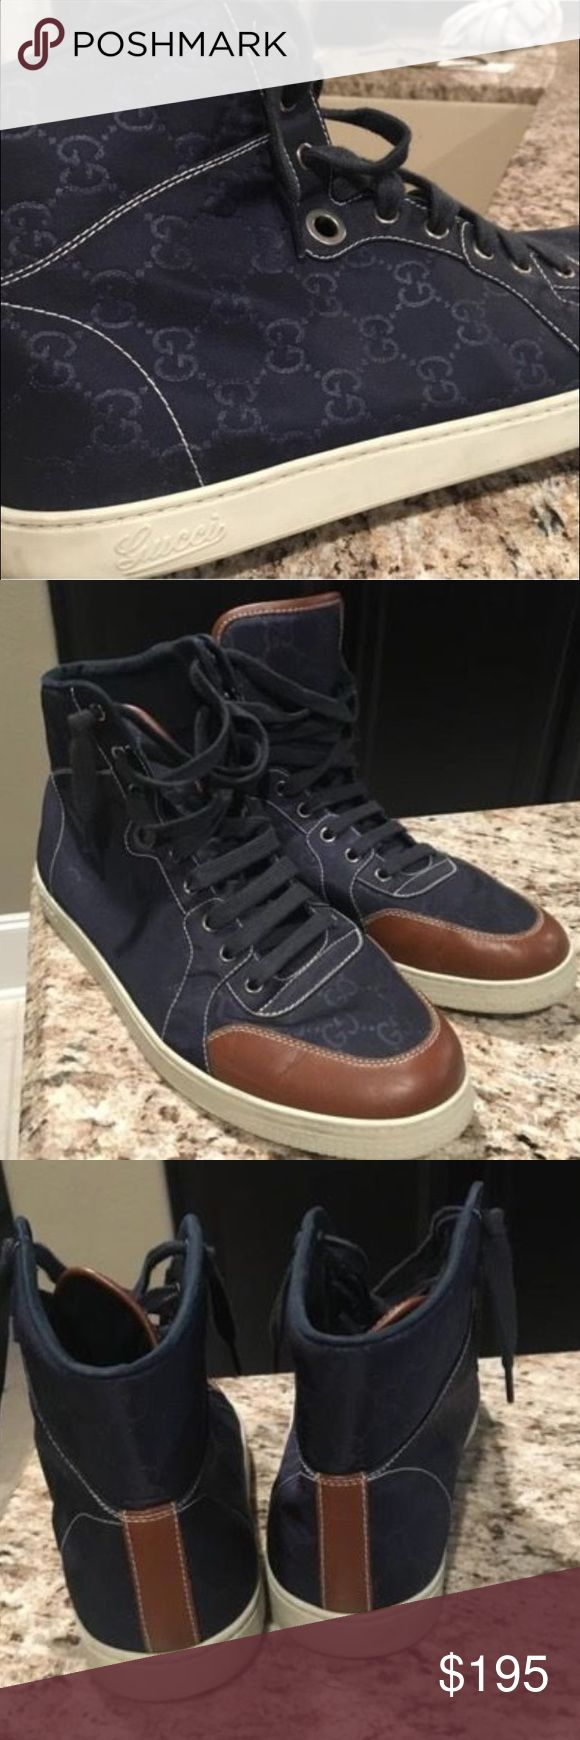 Gucci Men's High Top Sneaker Authentic. Classic Gucci Monogram Print. Men's. Gucci Shoes Sneakers